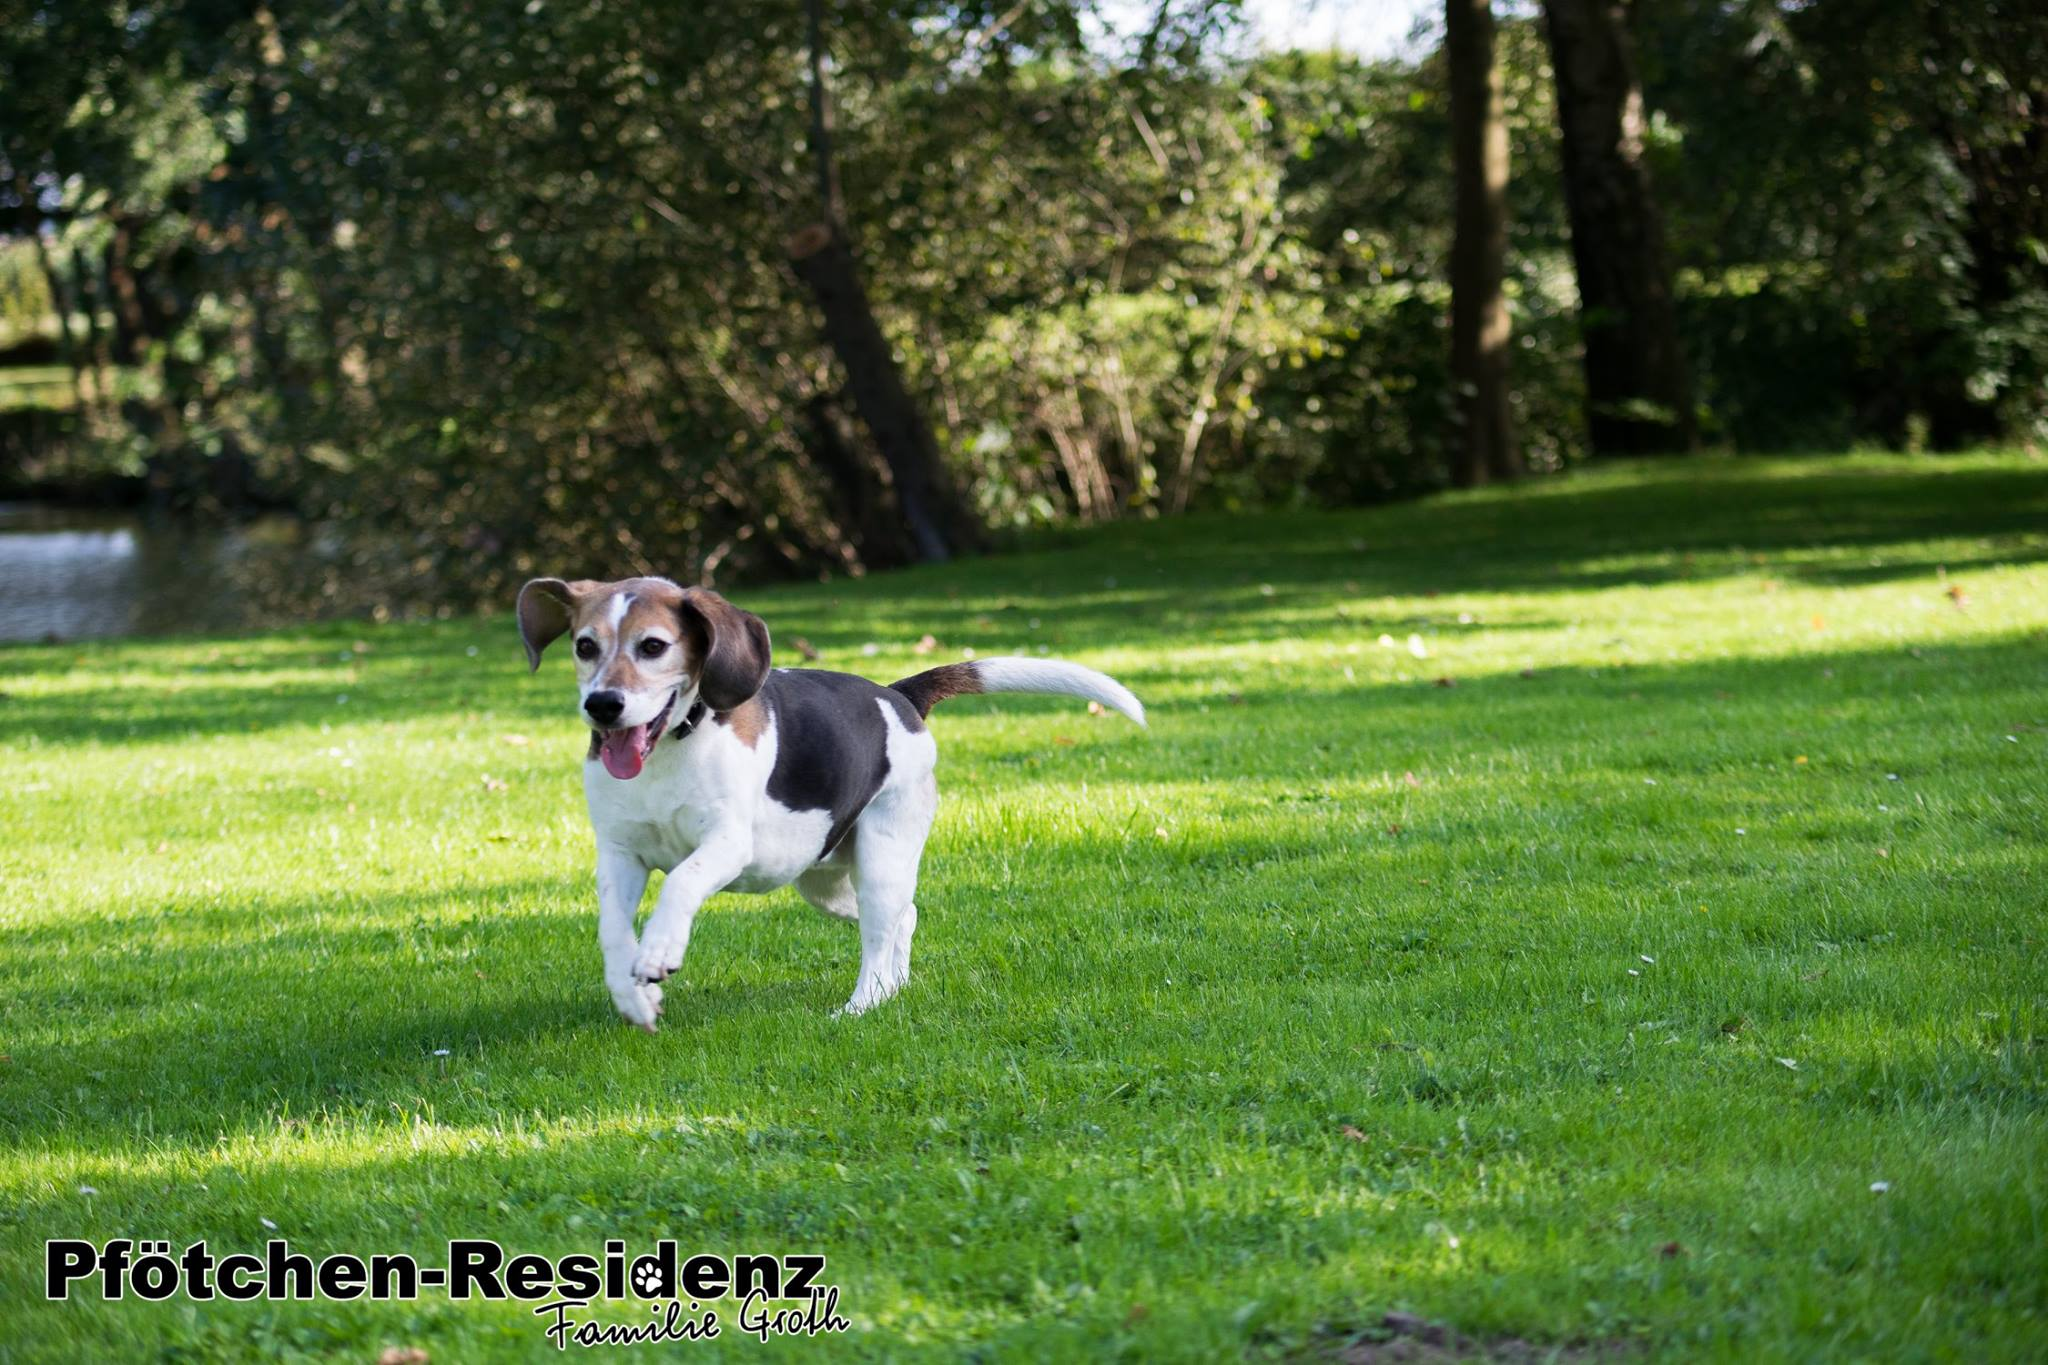 hundepension-hannover-13.jpg